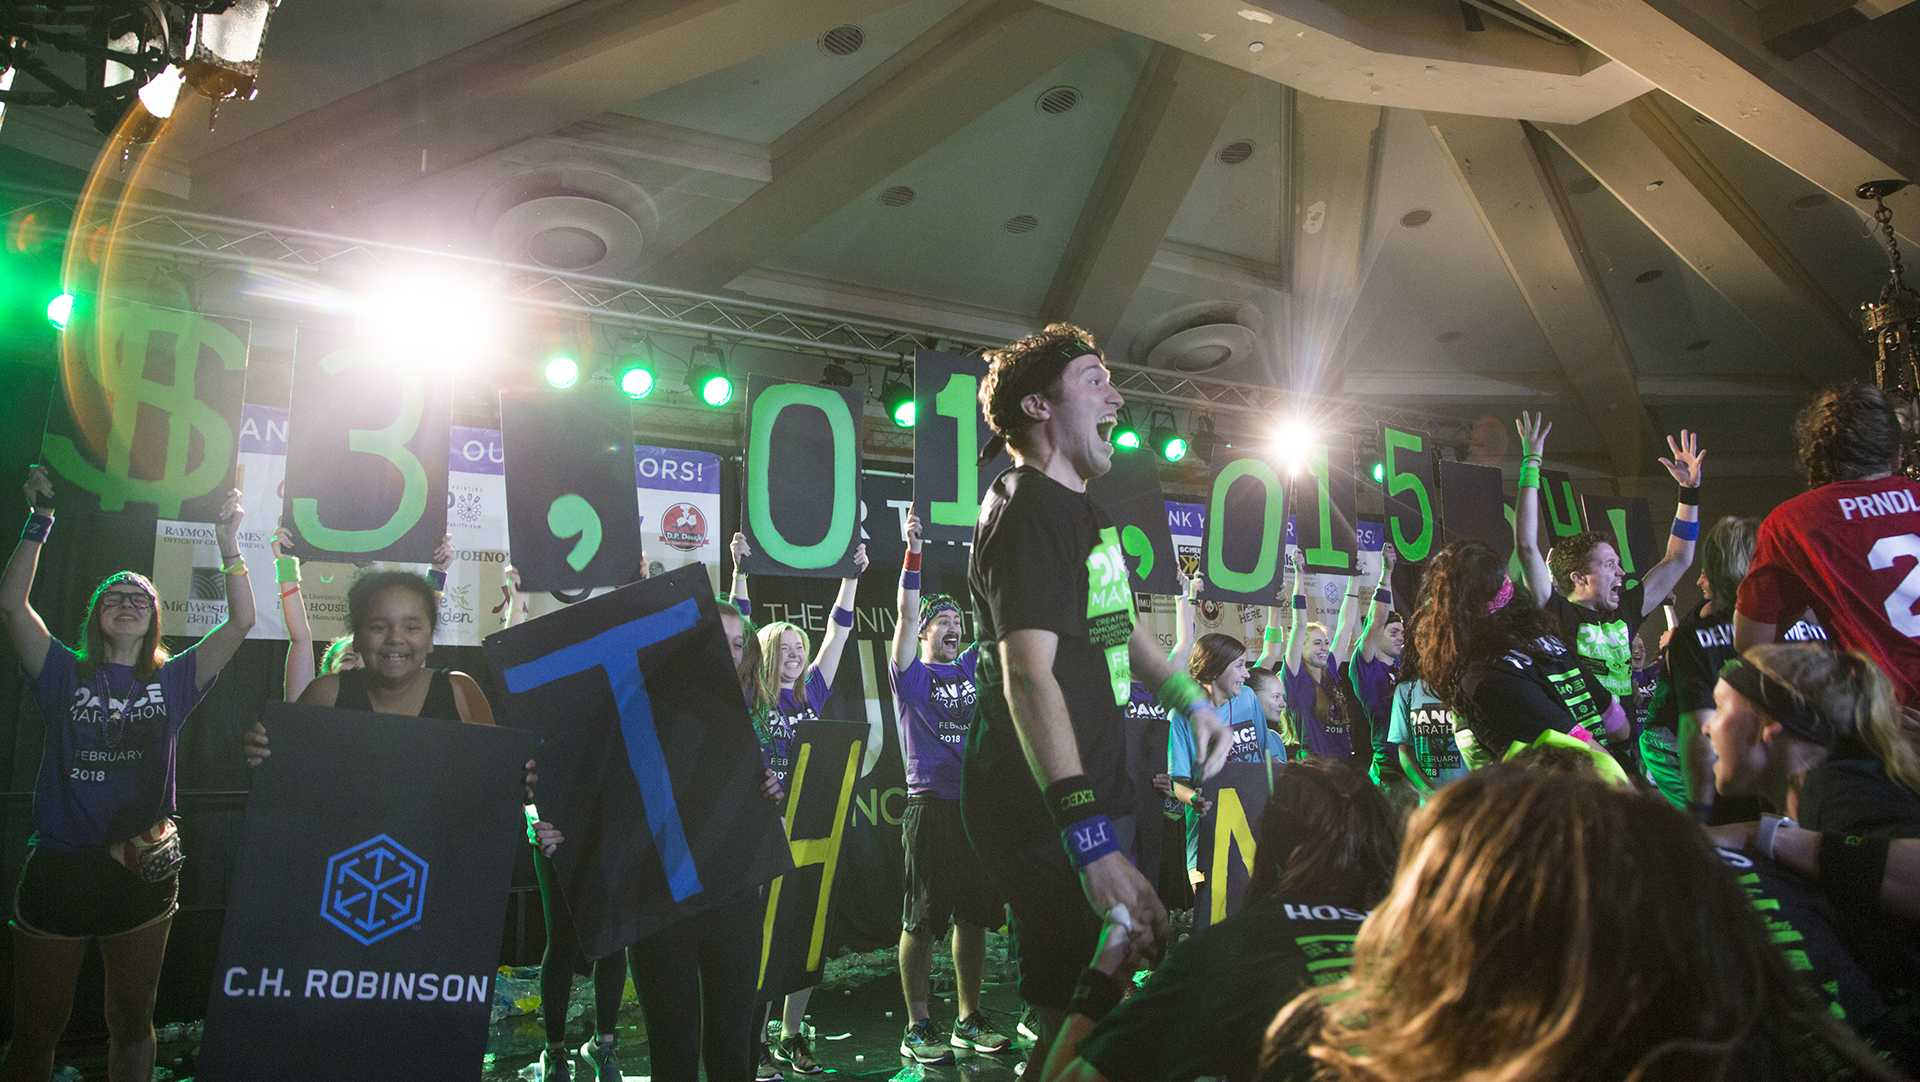 The Big Reveal shows a UI-record breaking amount for Dance Marathon 24 in the IMU on Saturday, Feb. 3, 2018. (Lily Smith/The Daily Iowan)